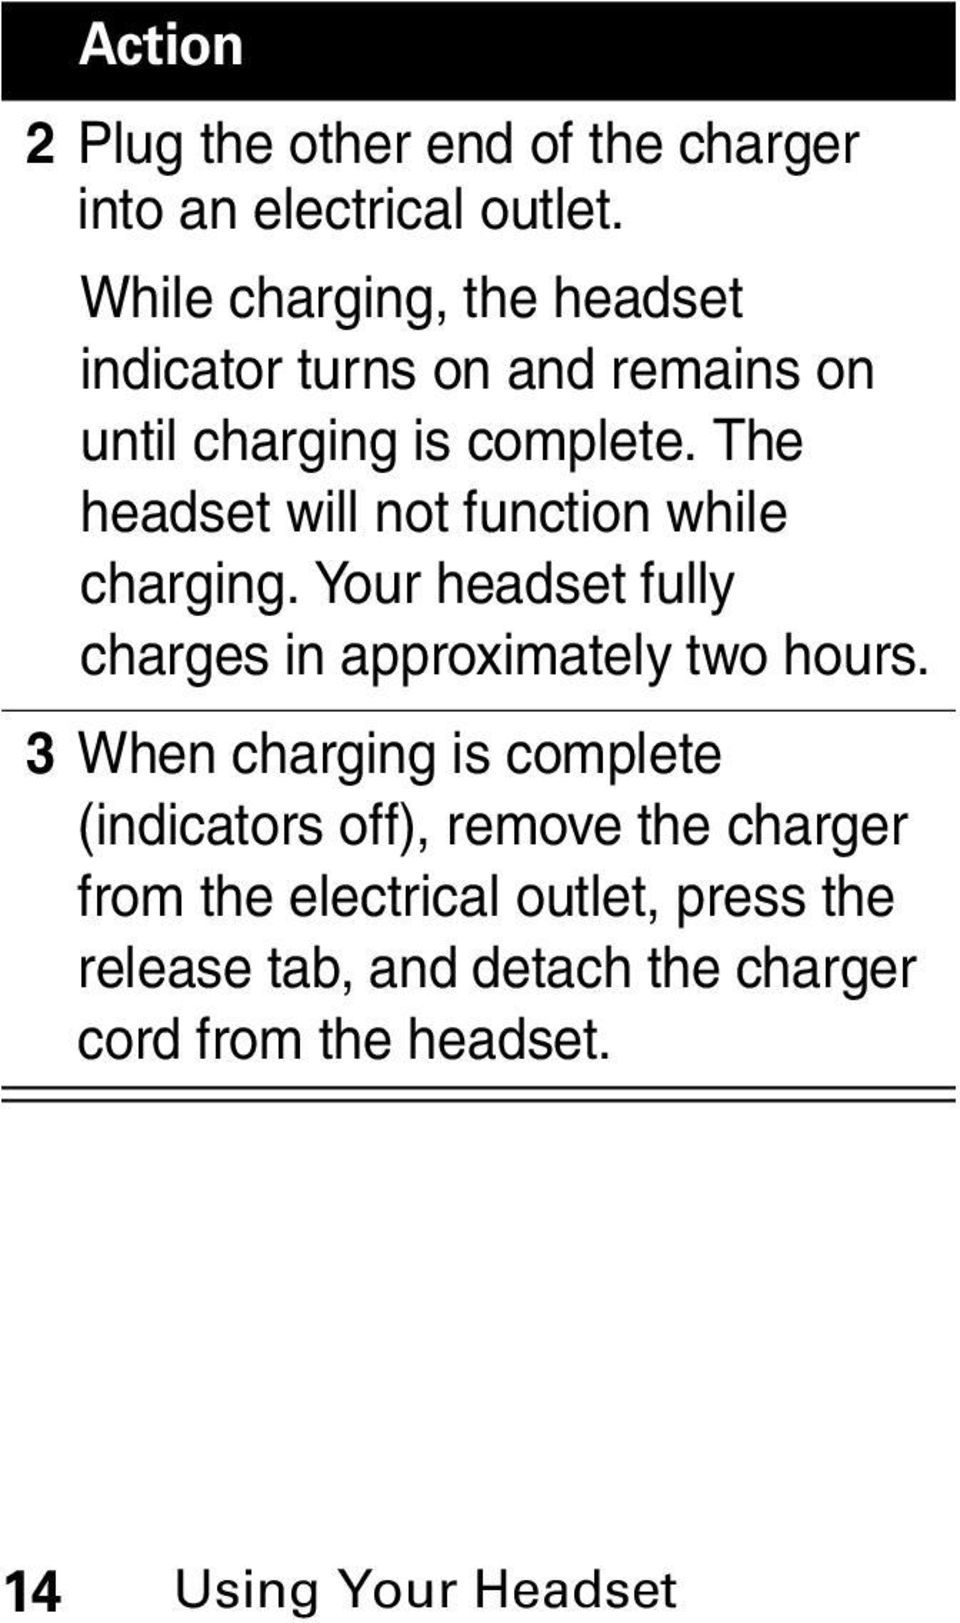 The headset will not function while charging. Your headset fully charges in approximately two hours.